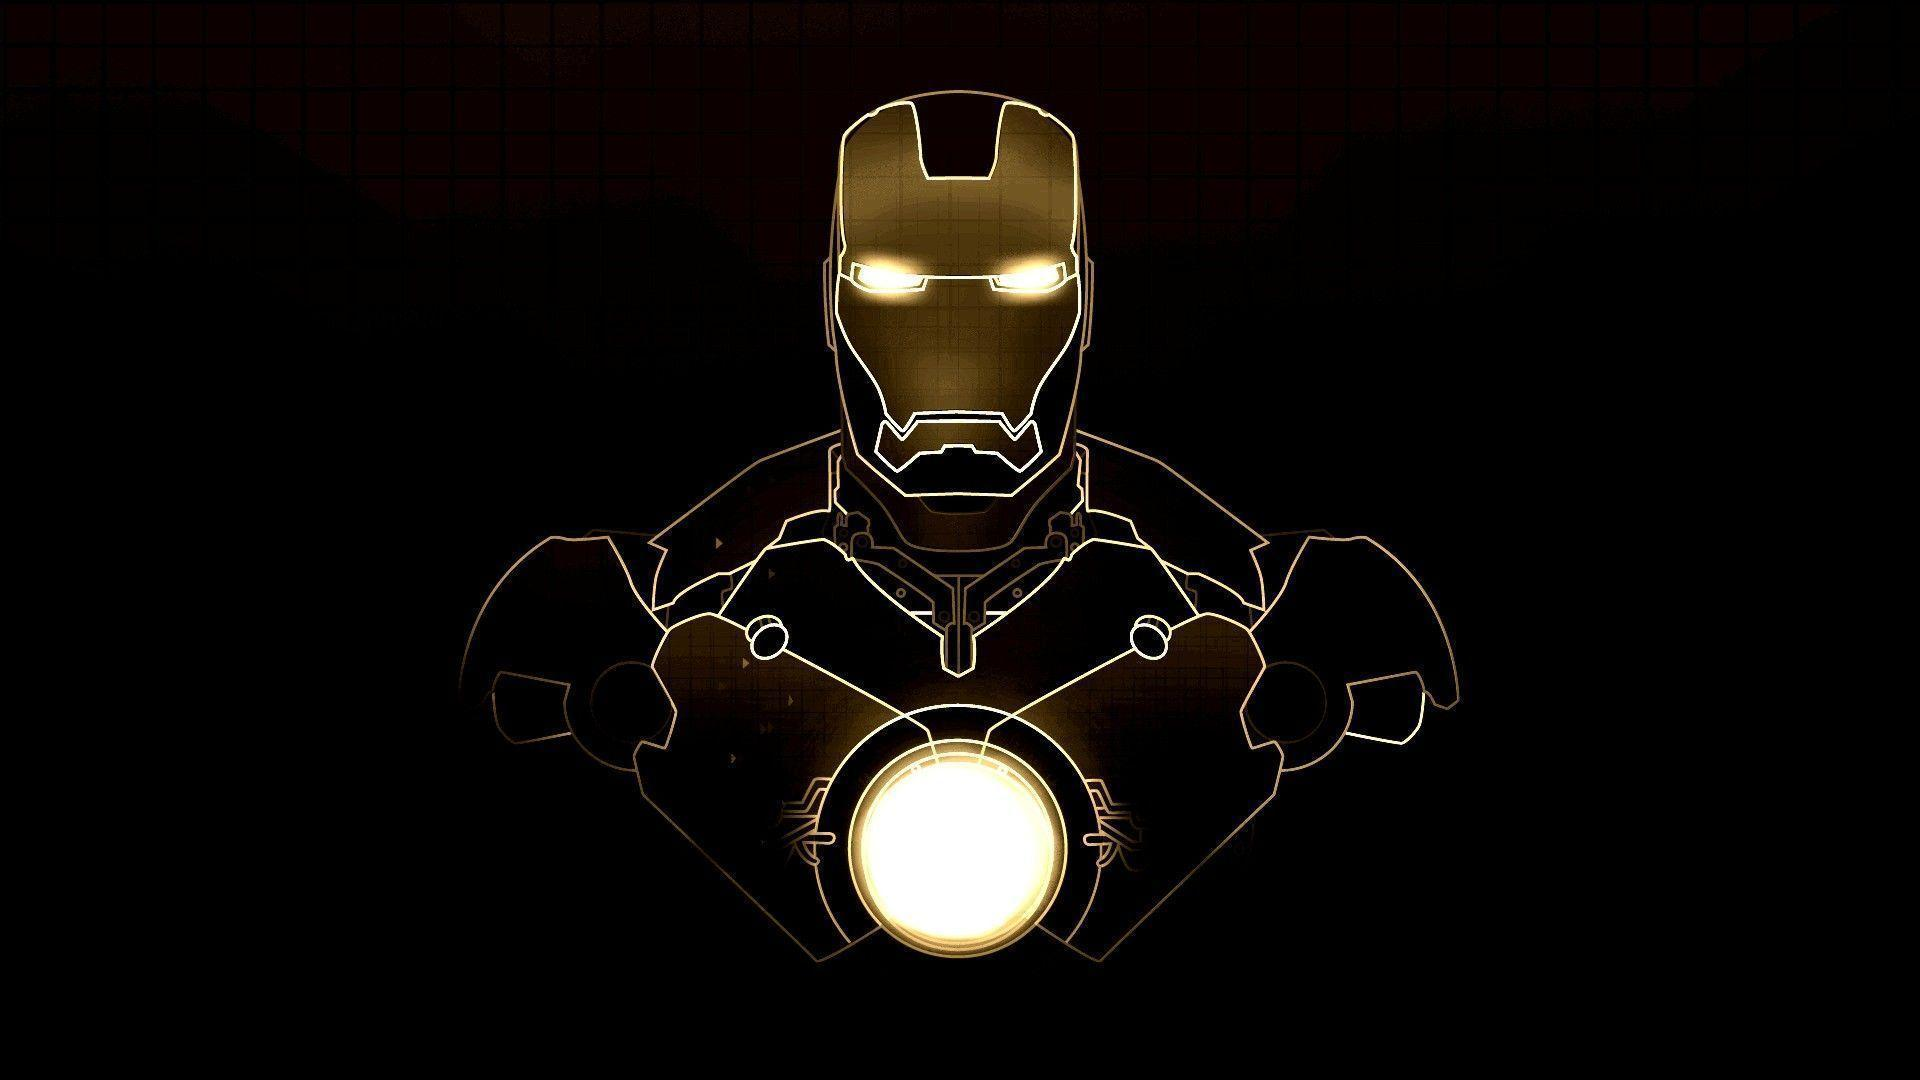 131 Iron Man Wallpapers | Iron Man Backgrounds Page 4